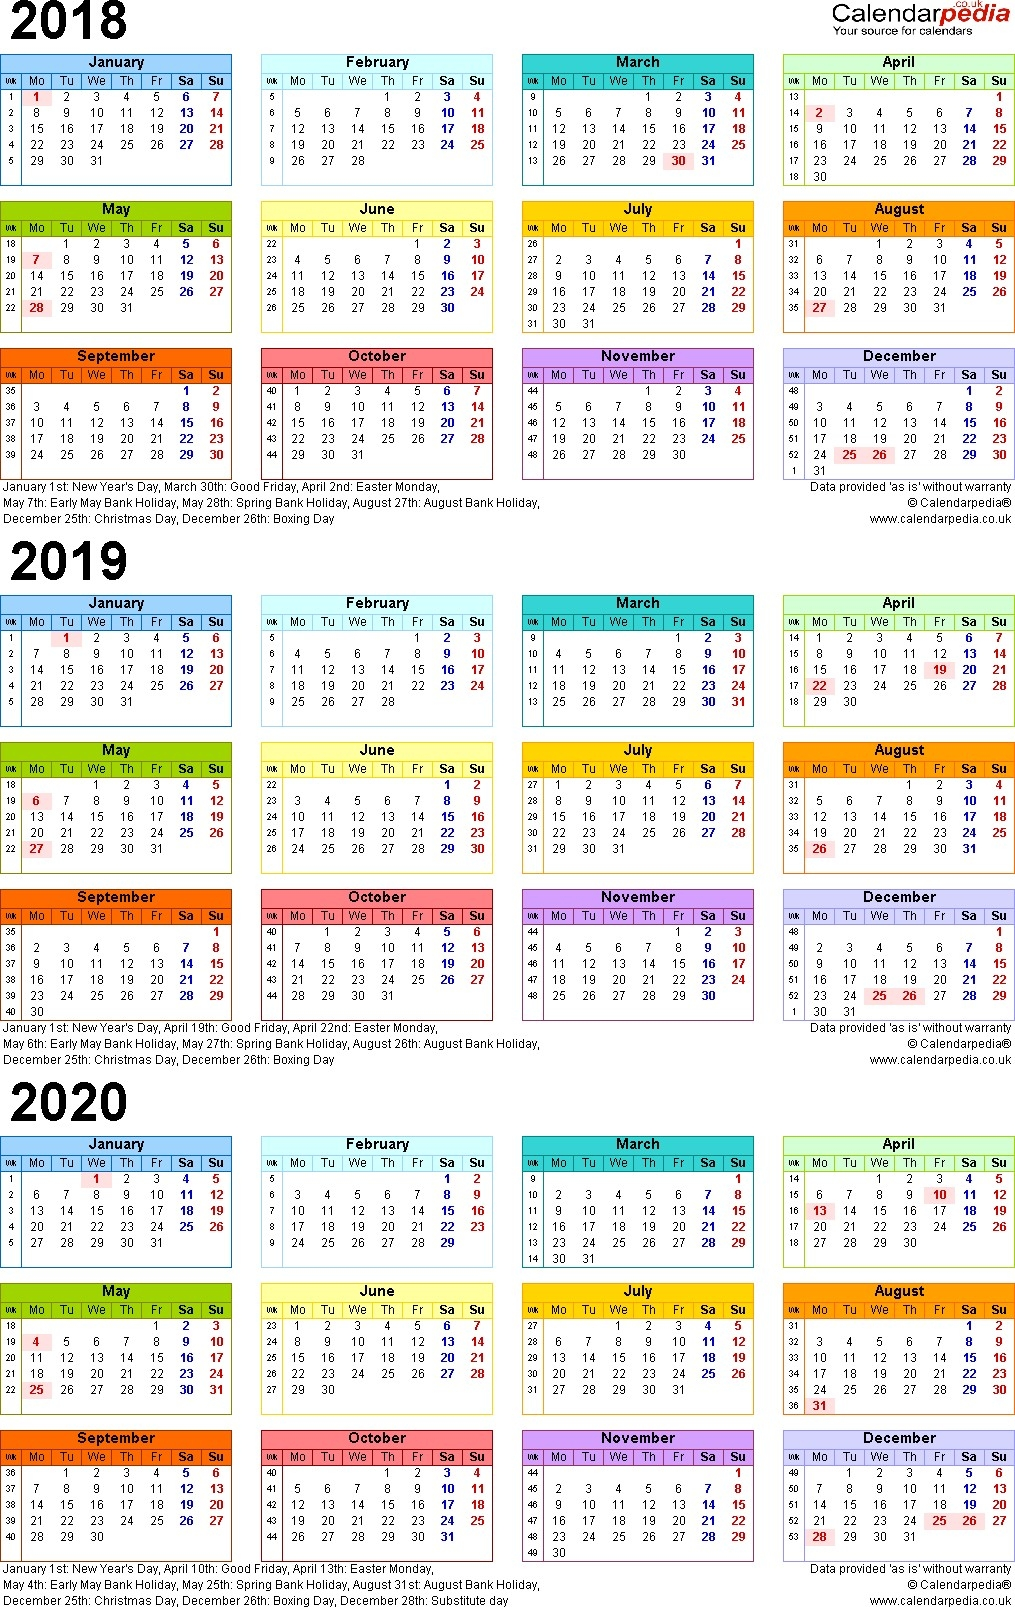 Calendar 2018 2019 2020 P 3 Year 2017 To | Jcreview Impressive 3 Year Calendar 2020